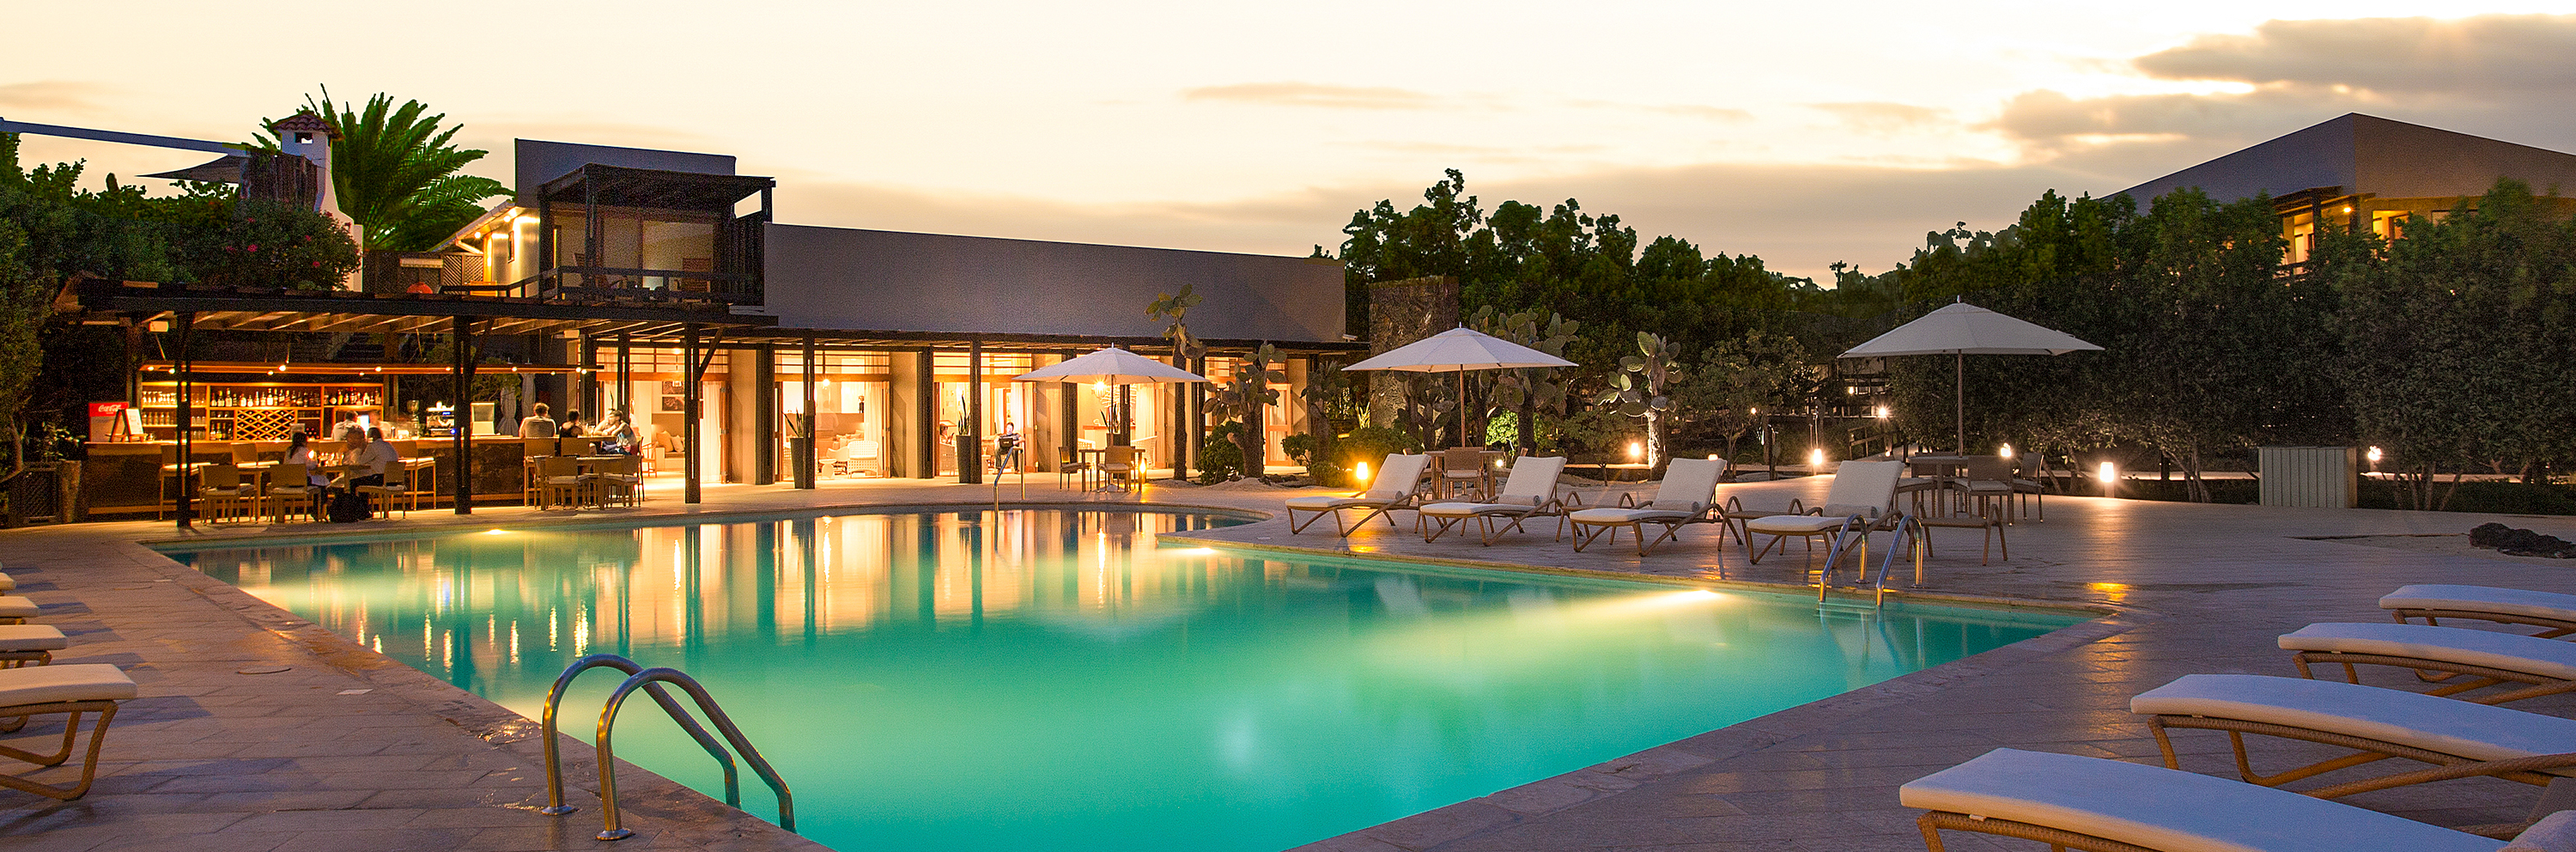 Finch Bay Hotel located in The Galapagos Islands, Ecuador - Land-based exploration and adventures